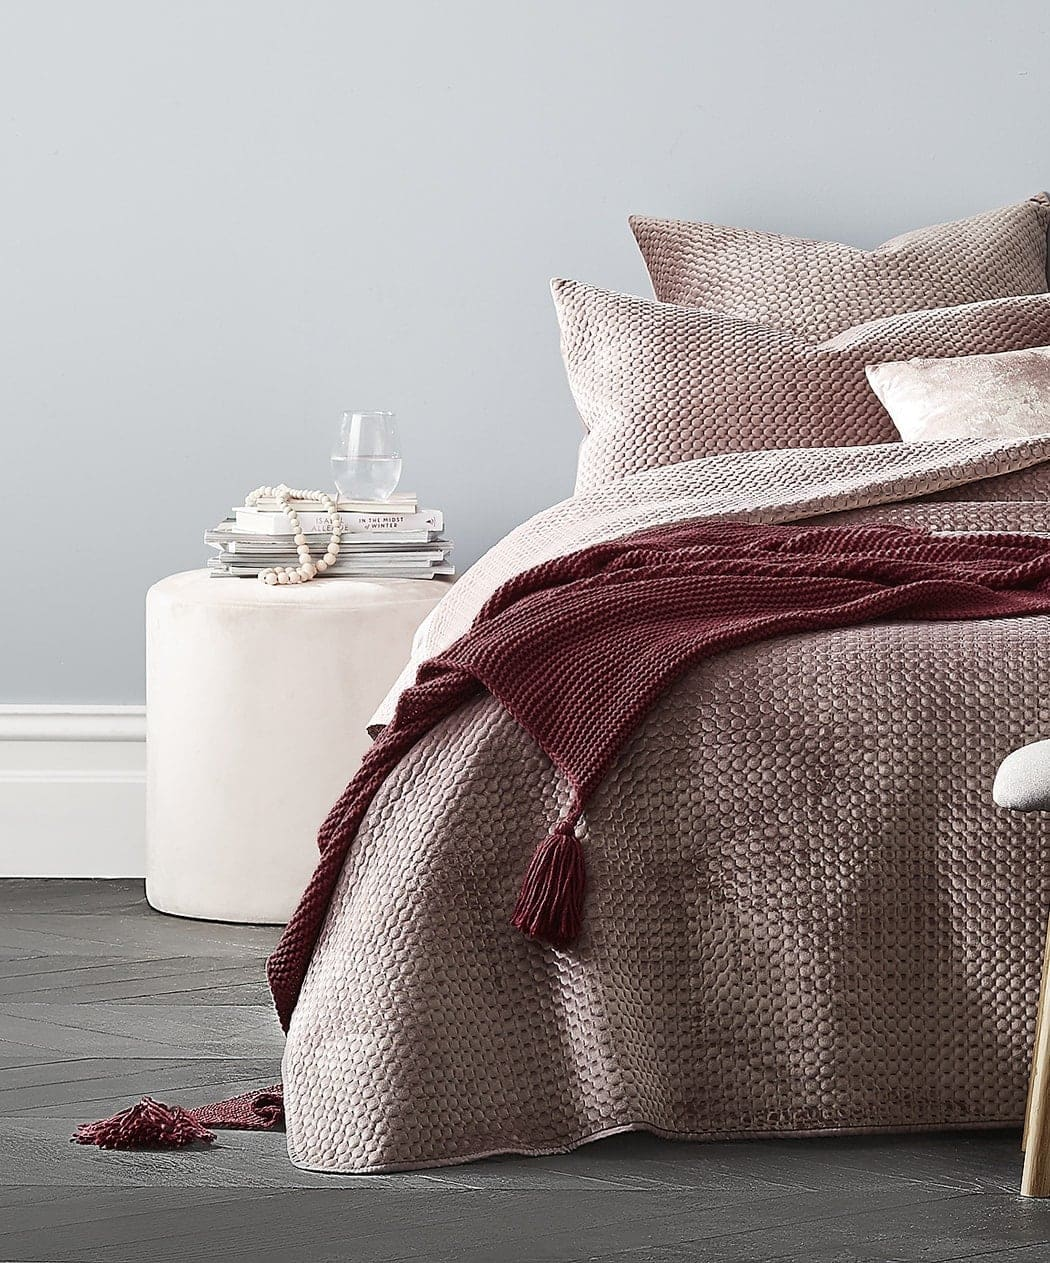 kmart pink bedspread with velvet cushions and burgundy throw